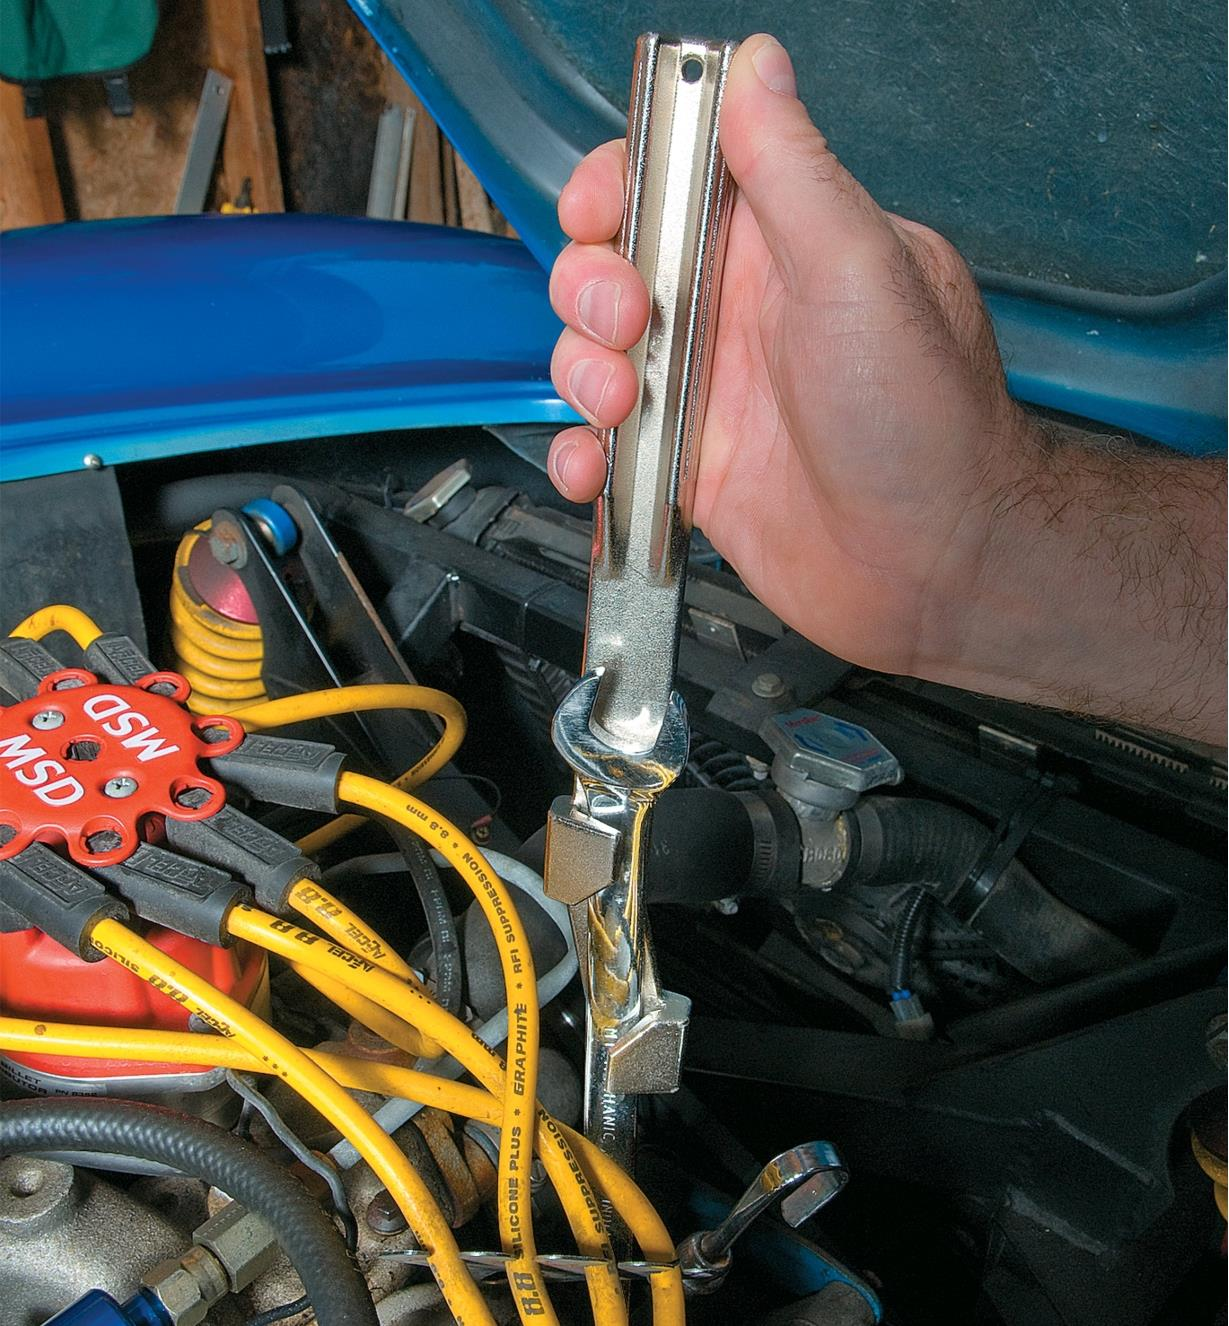 09A0505 - Mechanic's Wrench Extender